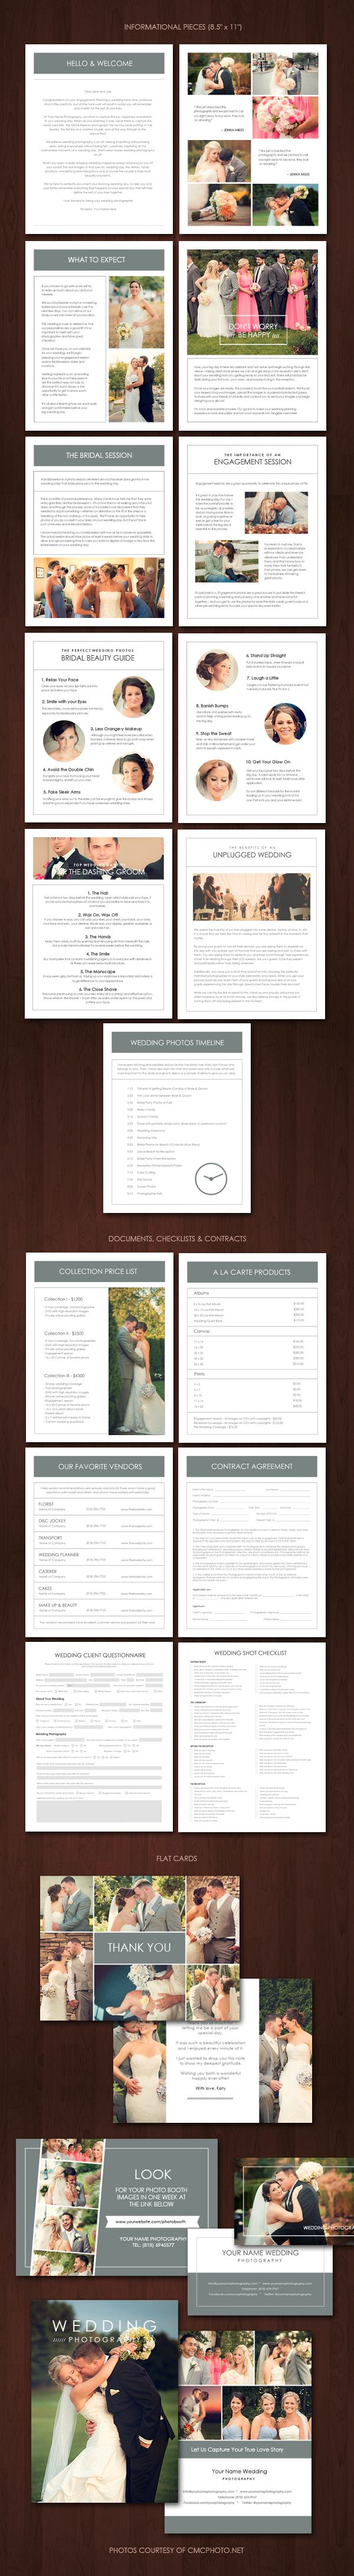 The ultimate wedding photography #marketing kit. #brochure or #booklet design ideas.